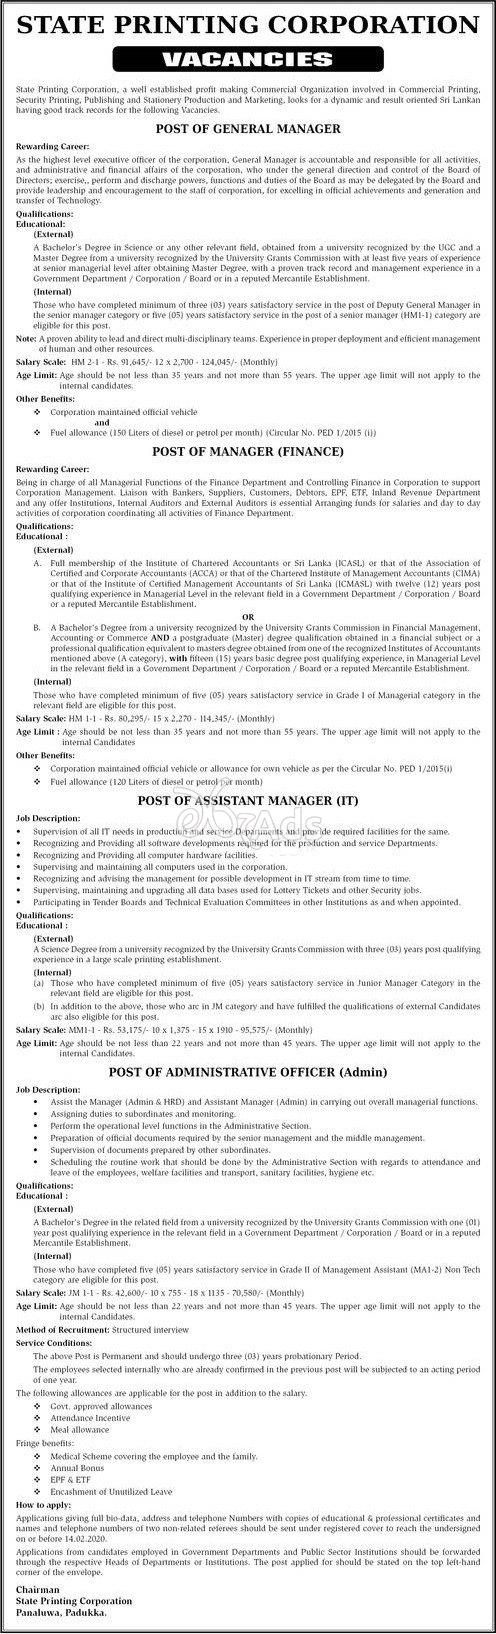 General Manager, Manager, Assistant Manager, Administration officer - State Printing Corporation Jobs 2020